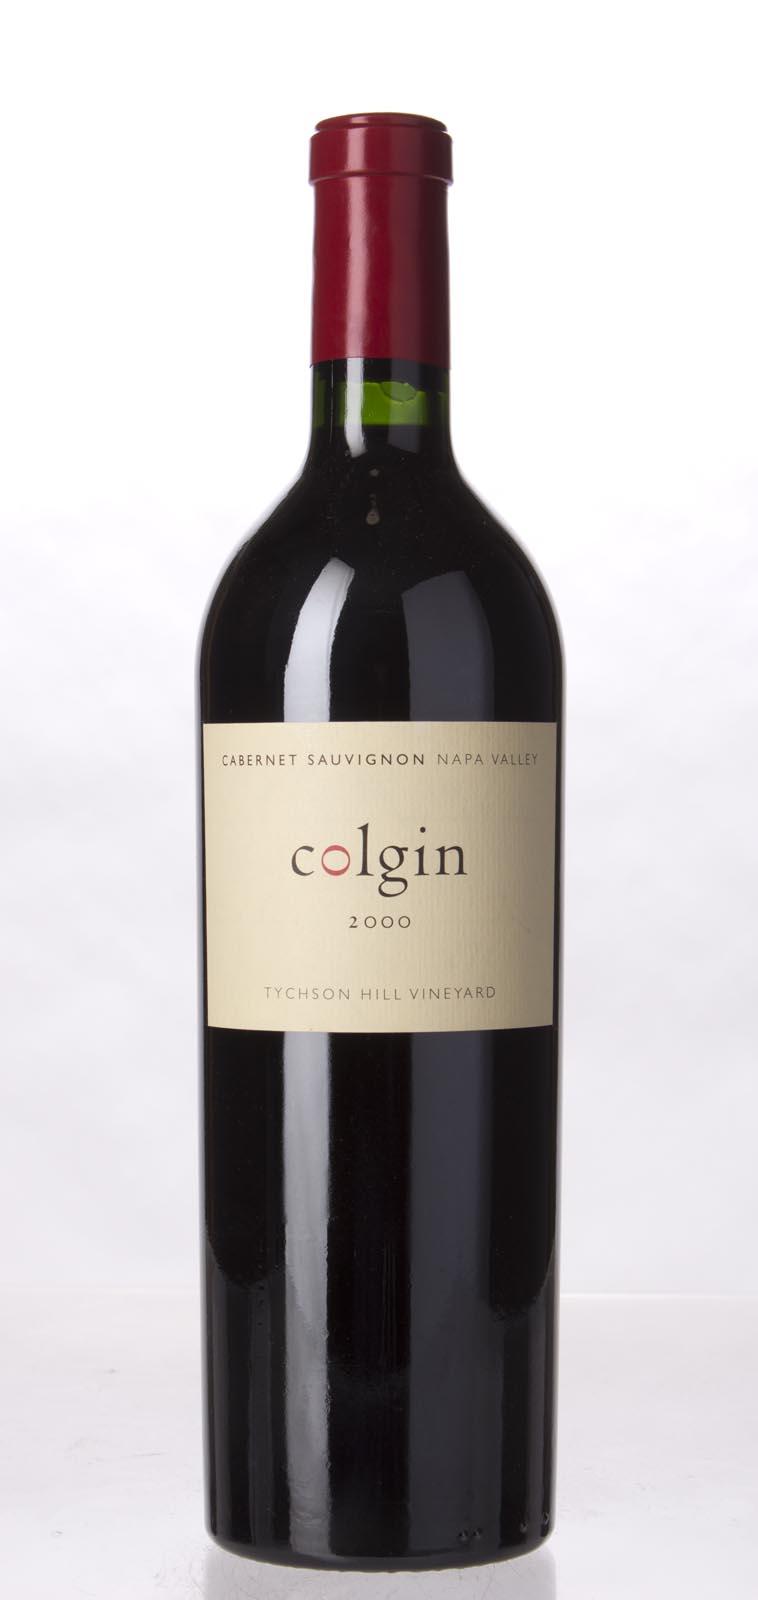 Colgin Cabernet Sauvignon Tychson Hill Vineyard 2000,  (WS96) from The BPW - Merchants of rare and fine wines.